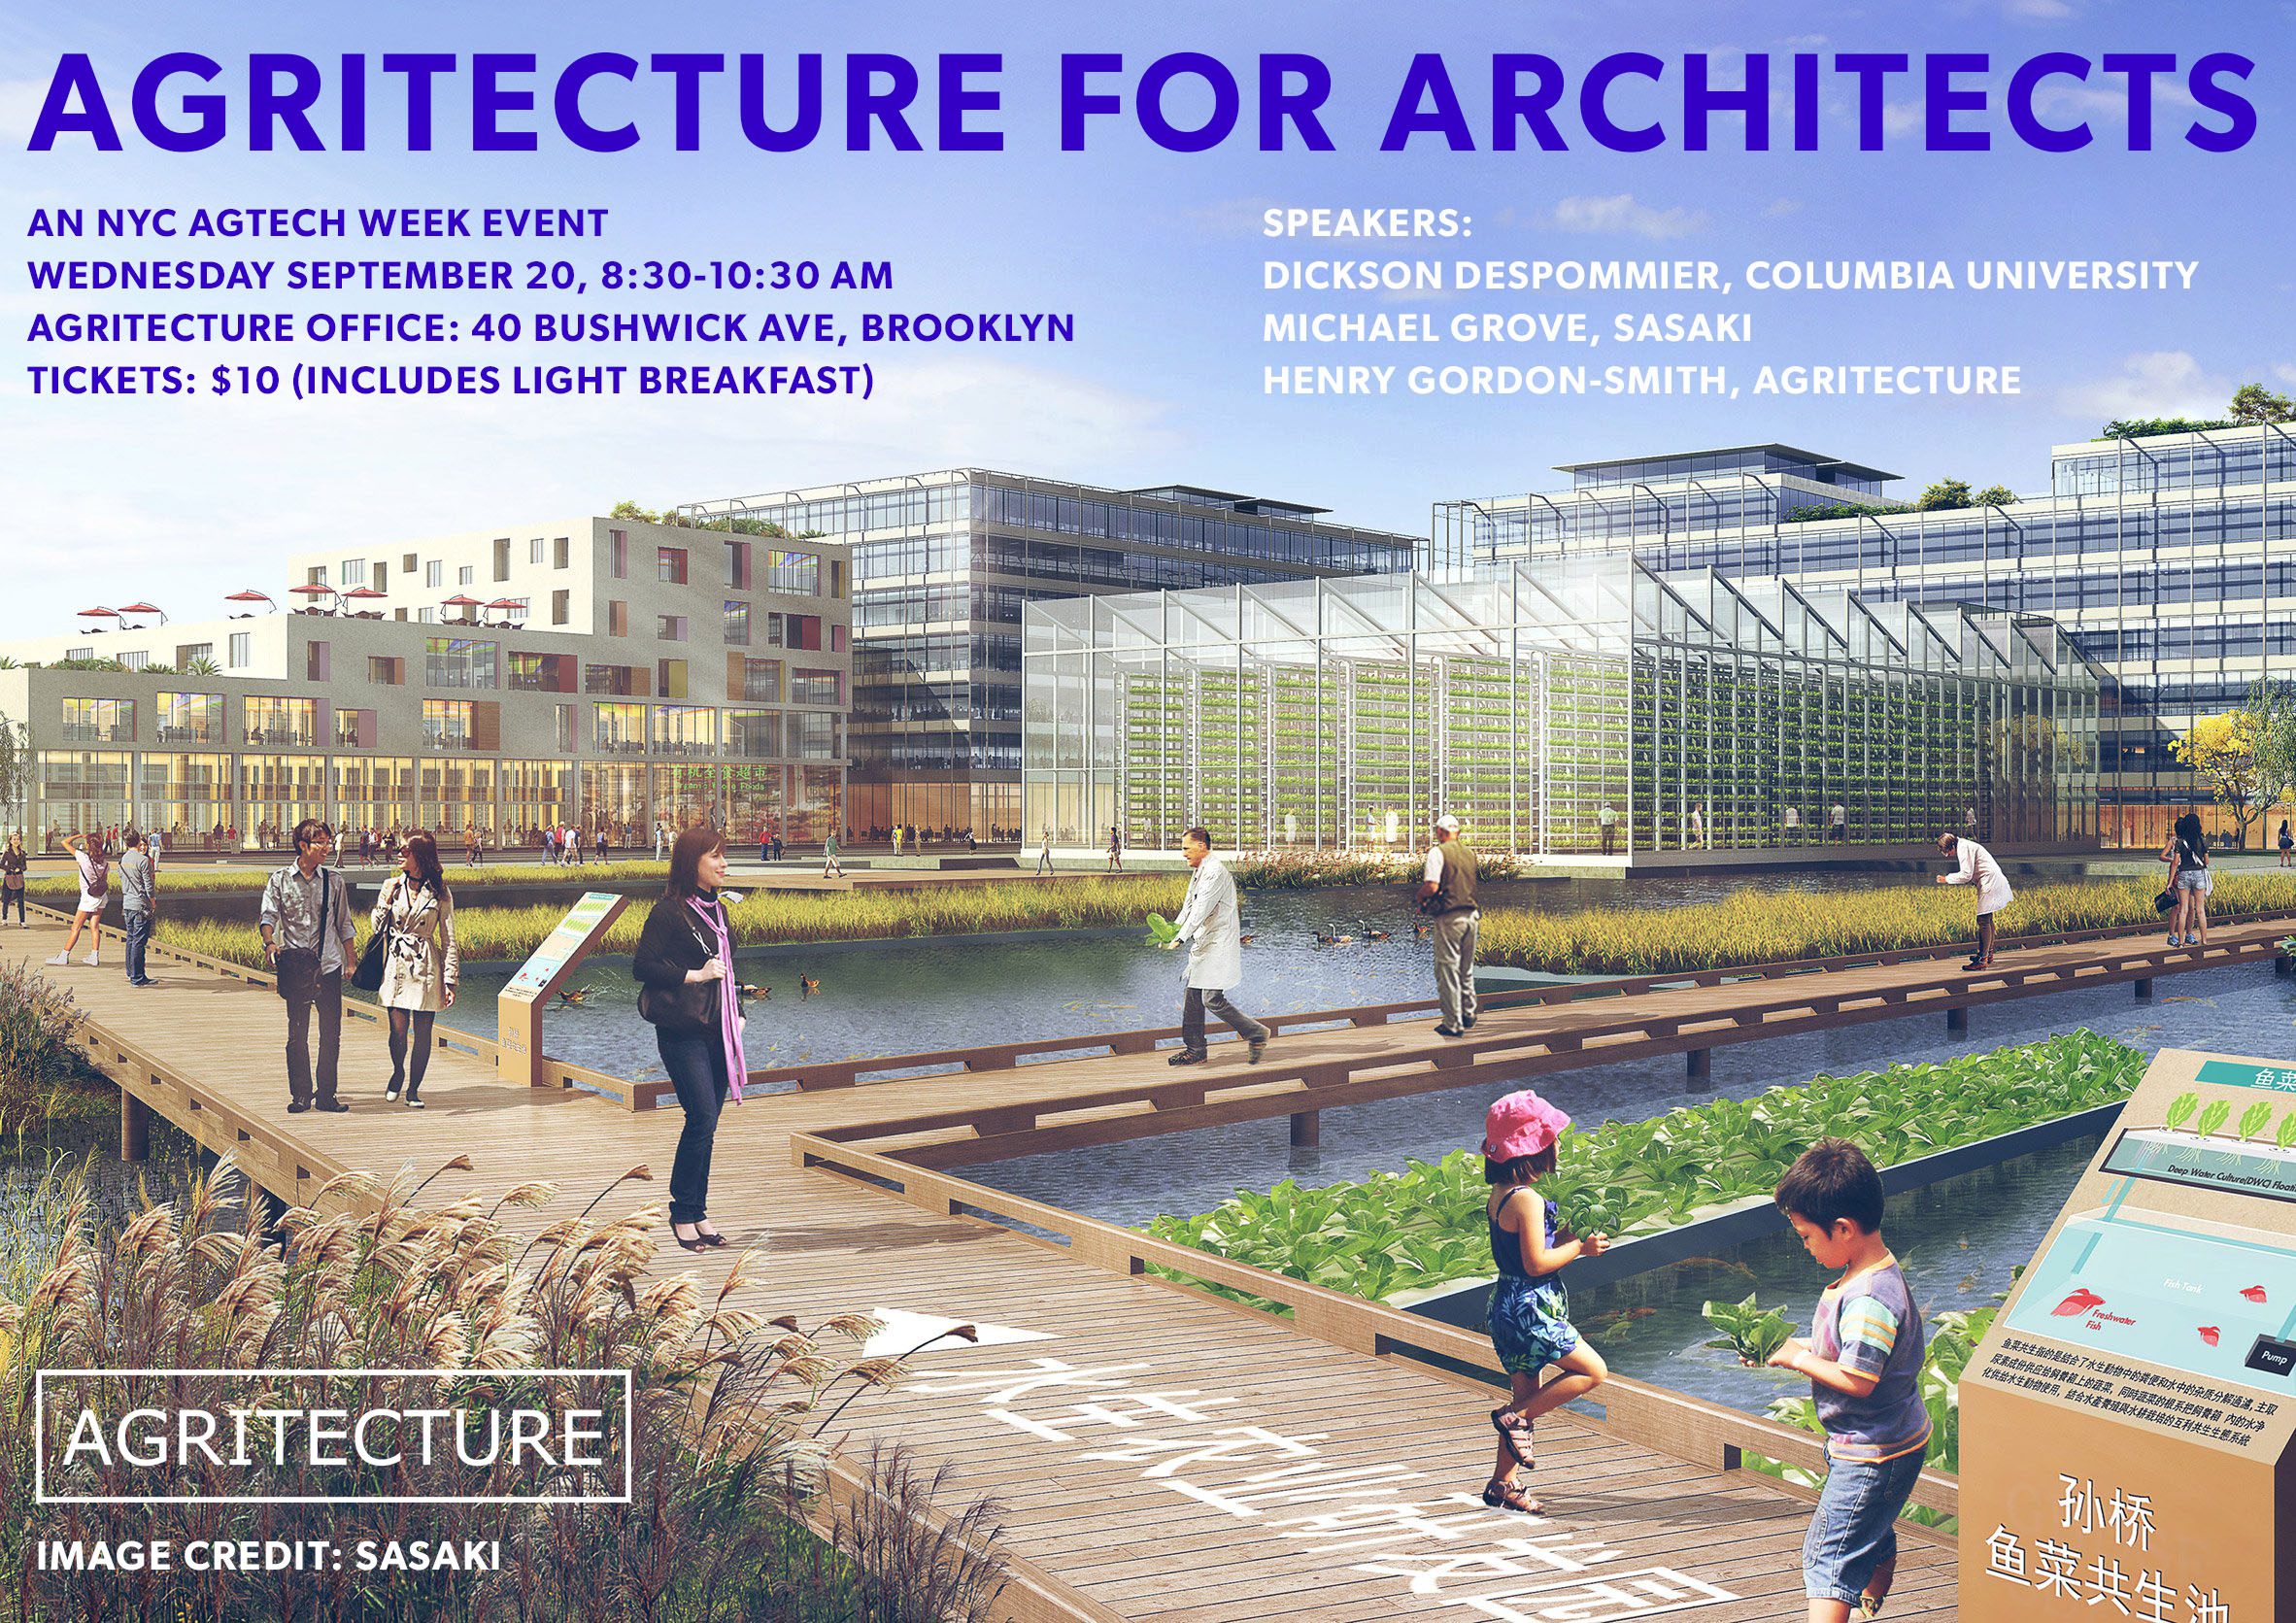 agritecture for architects flyer.jpg